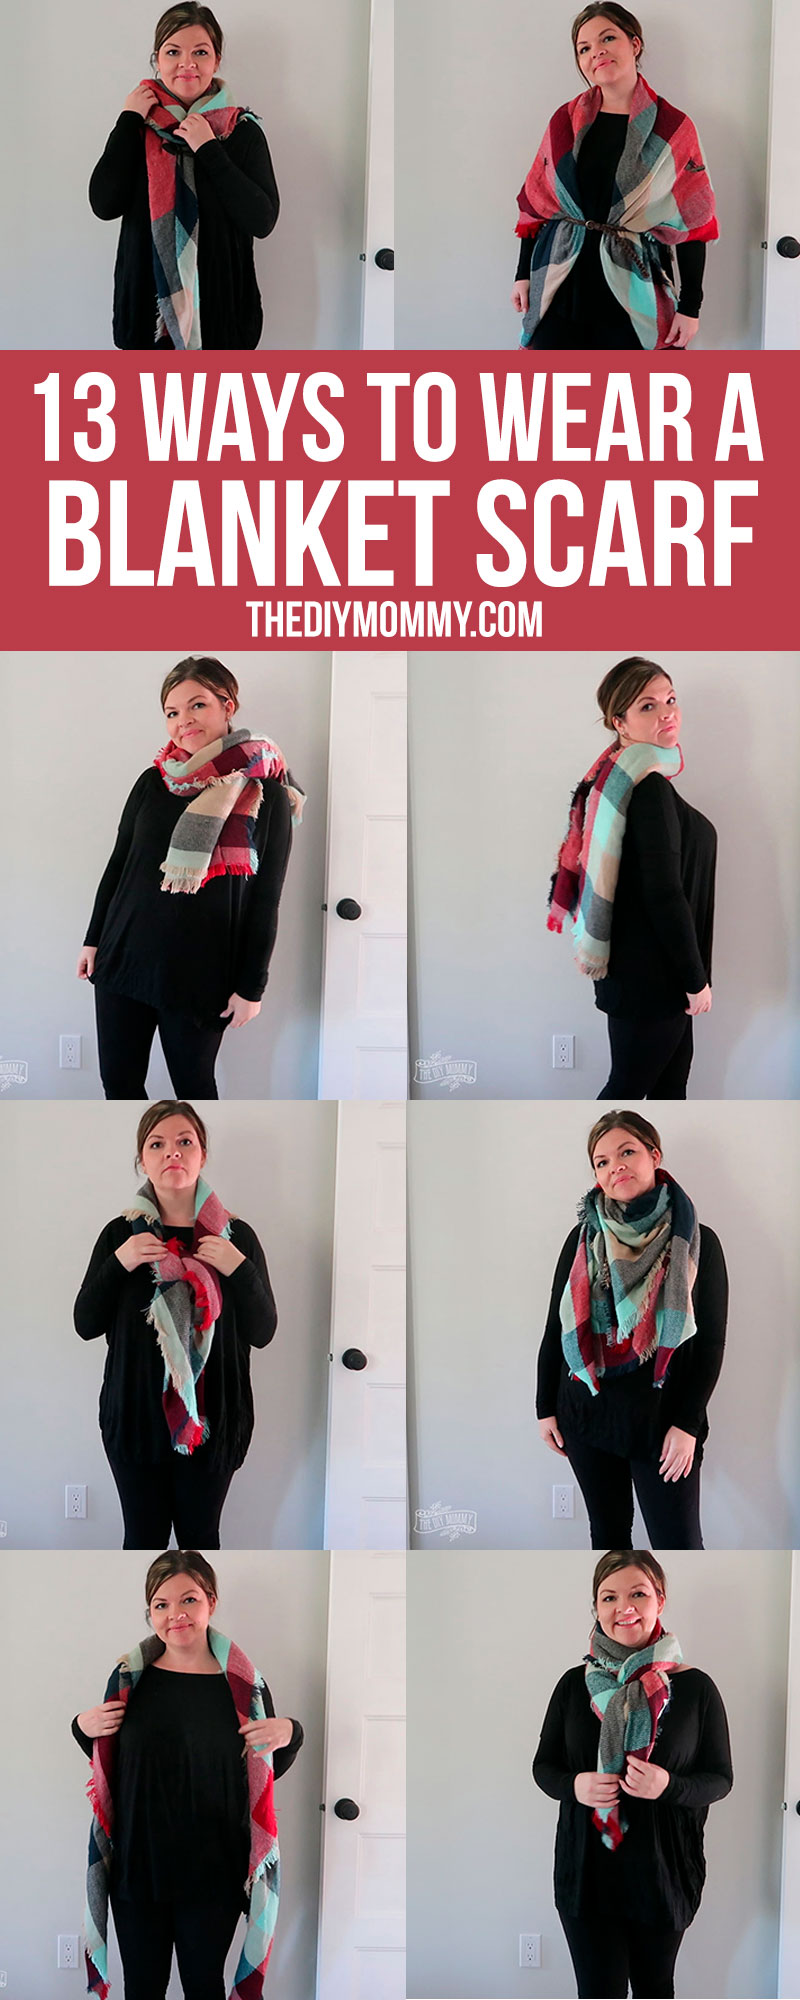 So many great ways to wear / tie a blanket scarf for Fall!